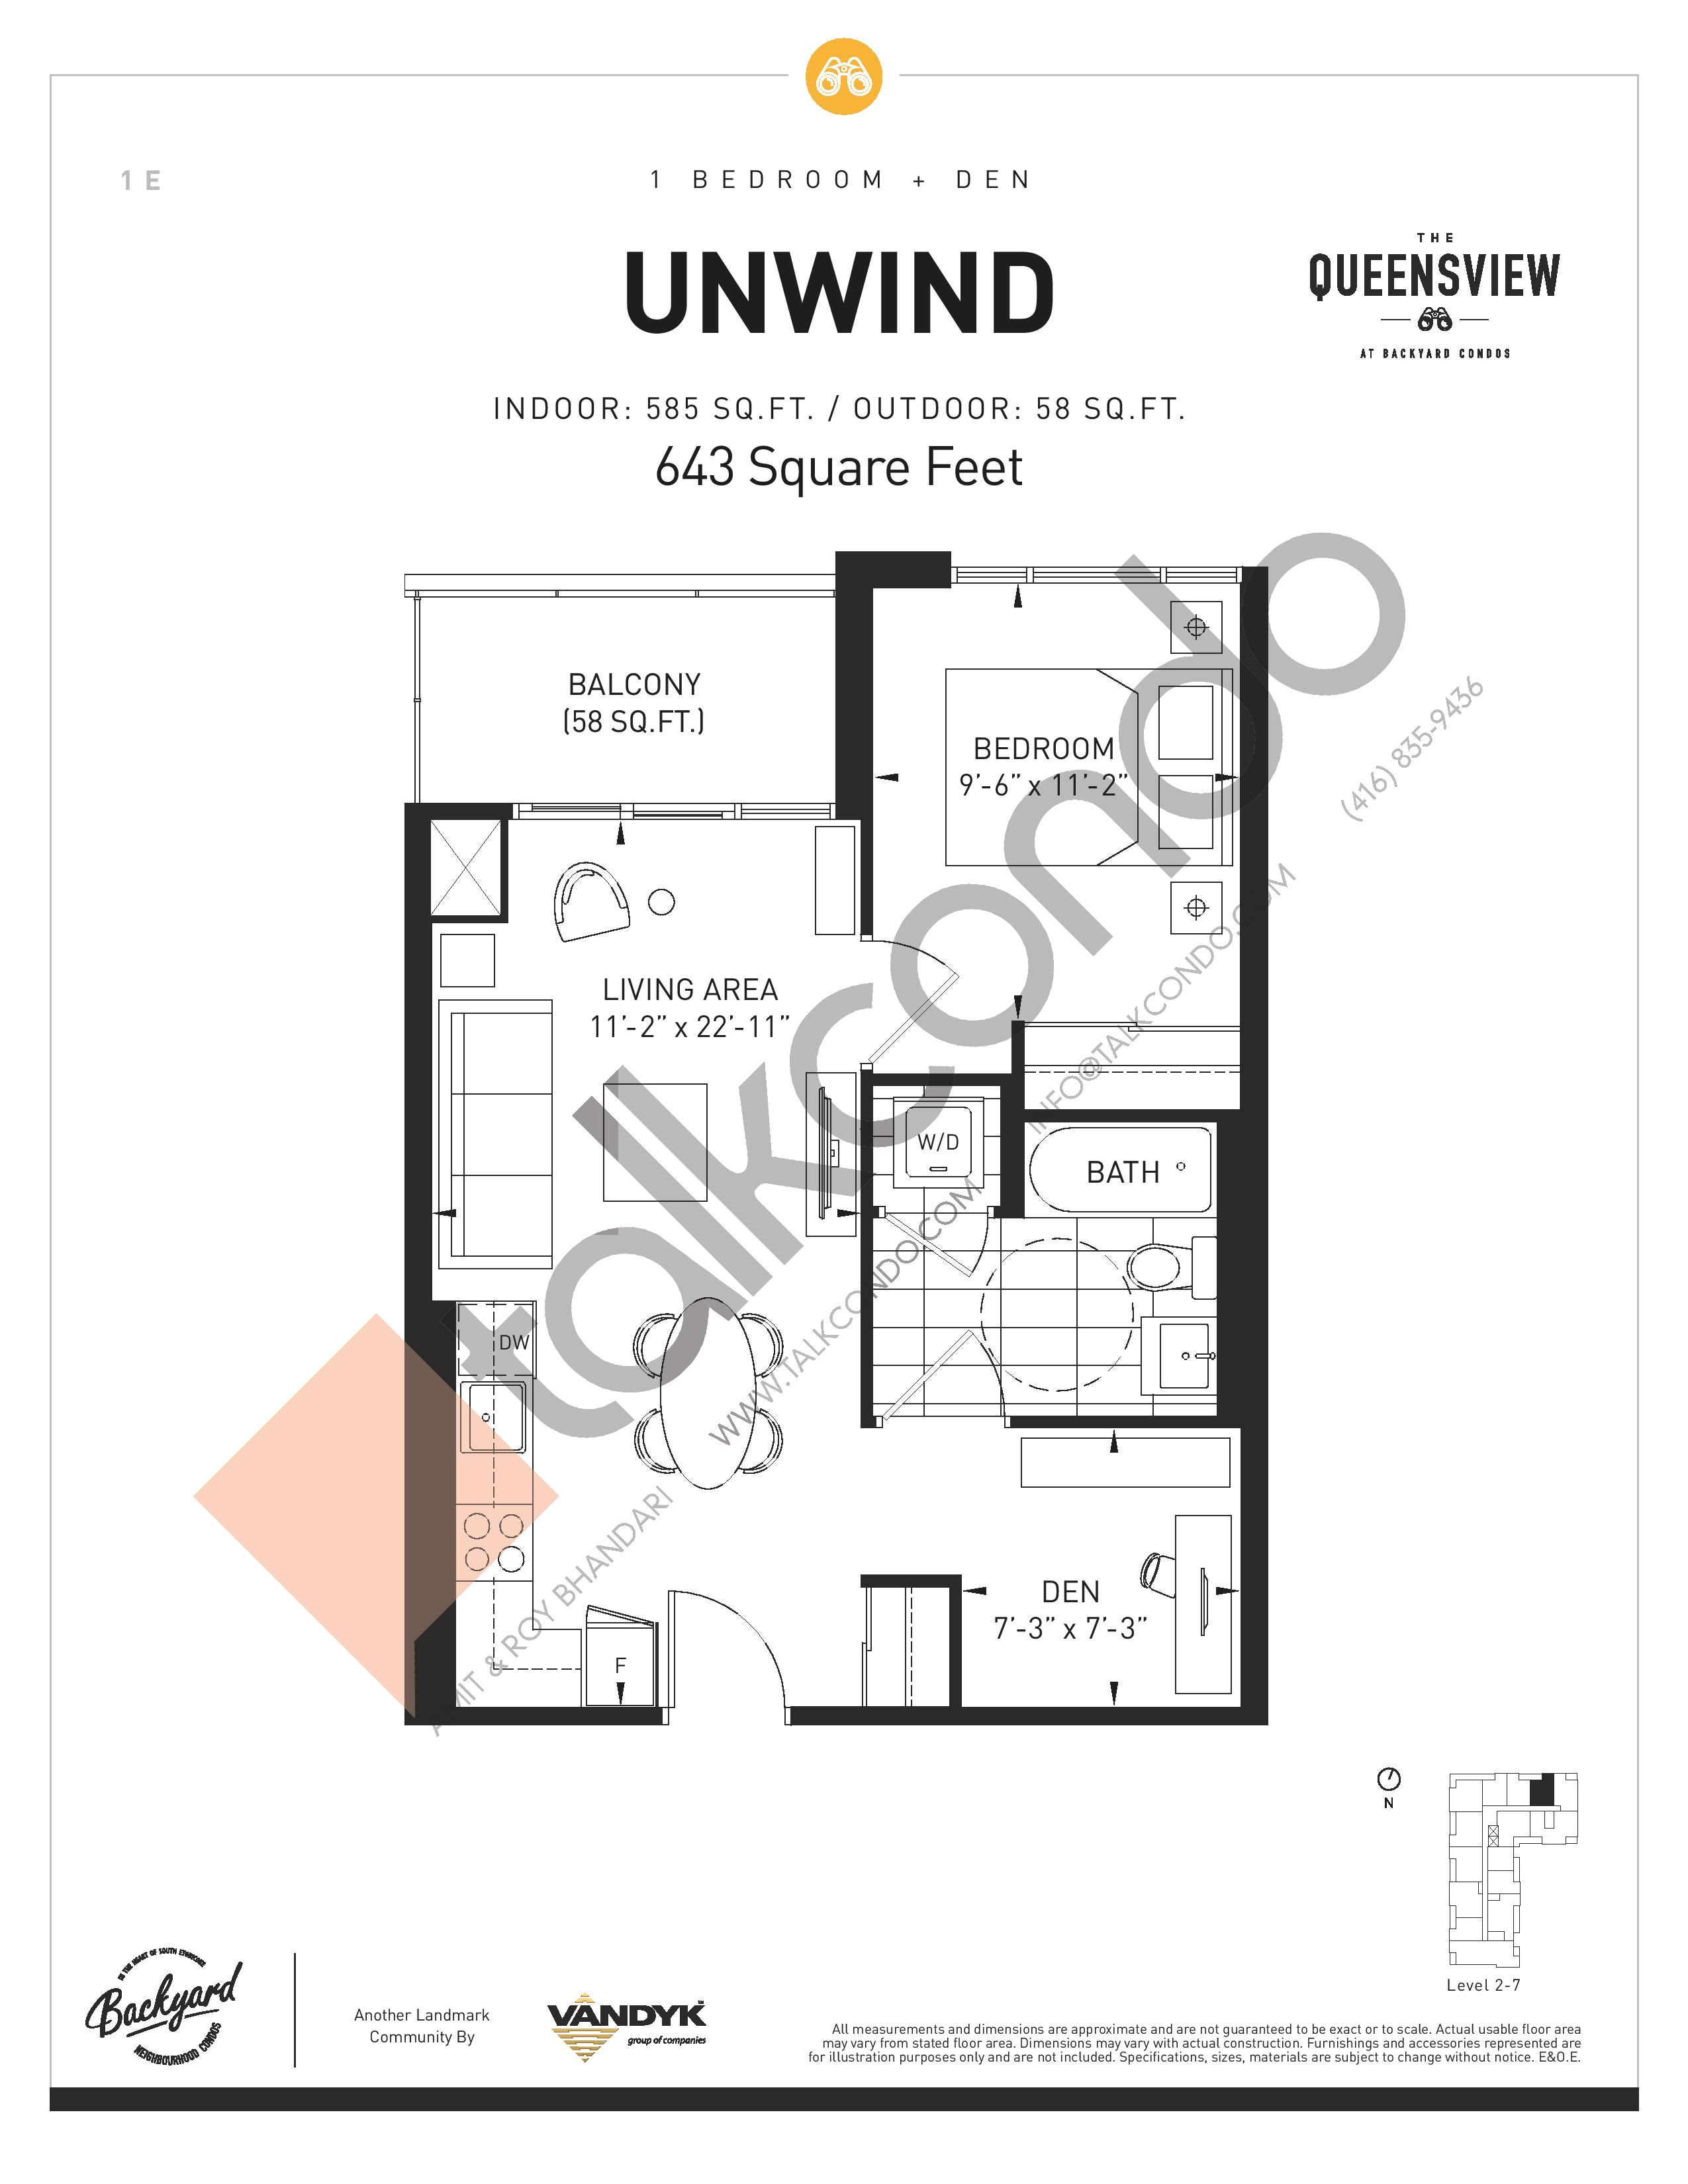 Unwind Floor Plan at The Queensview at Backyard Condos - 585 sq.ft